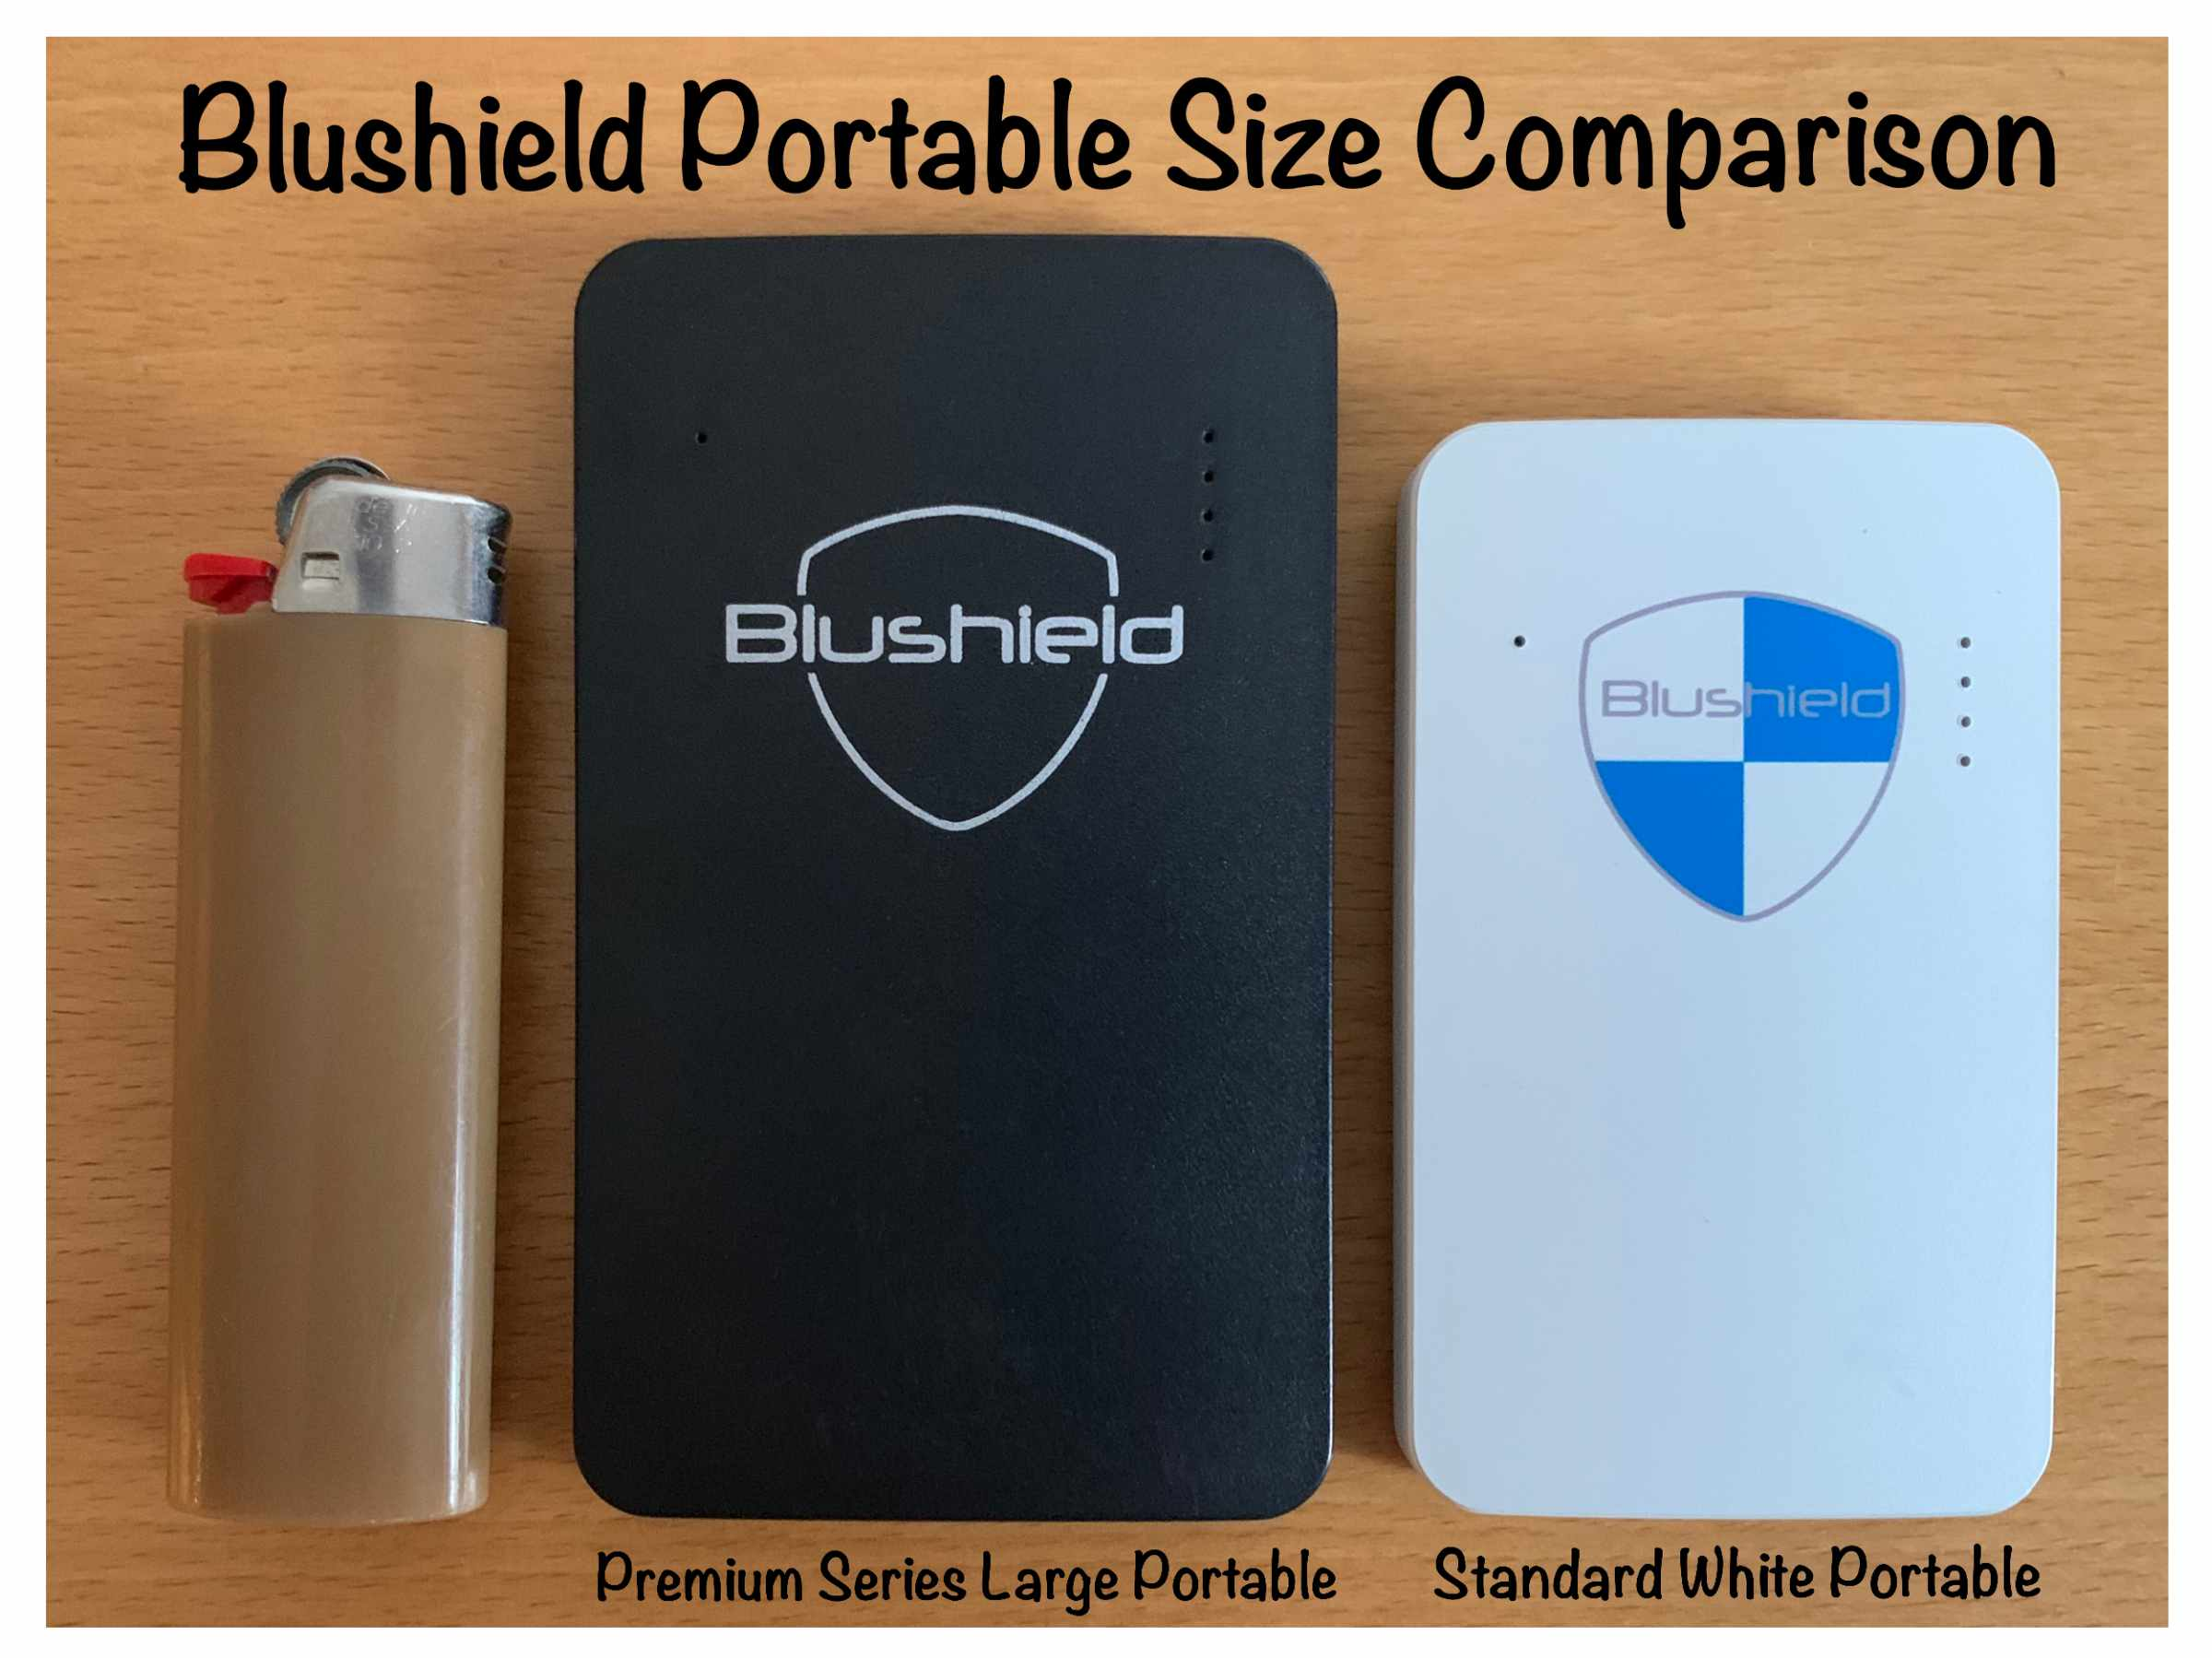 Blushield Portable Size Comparison Photo